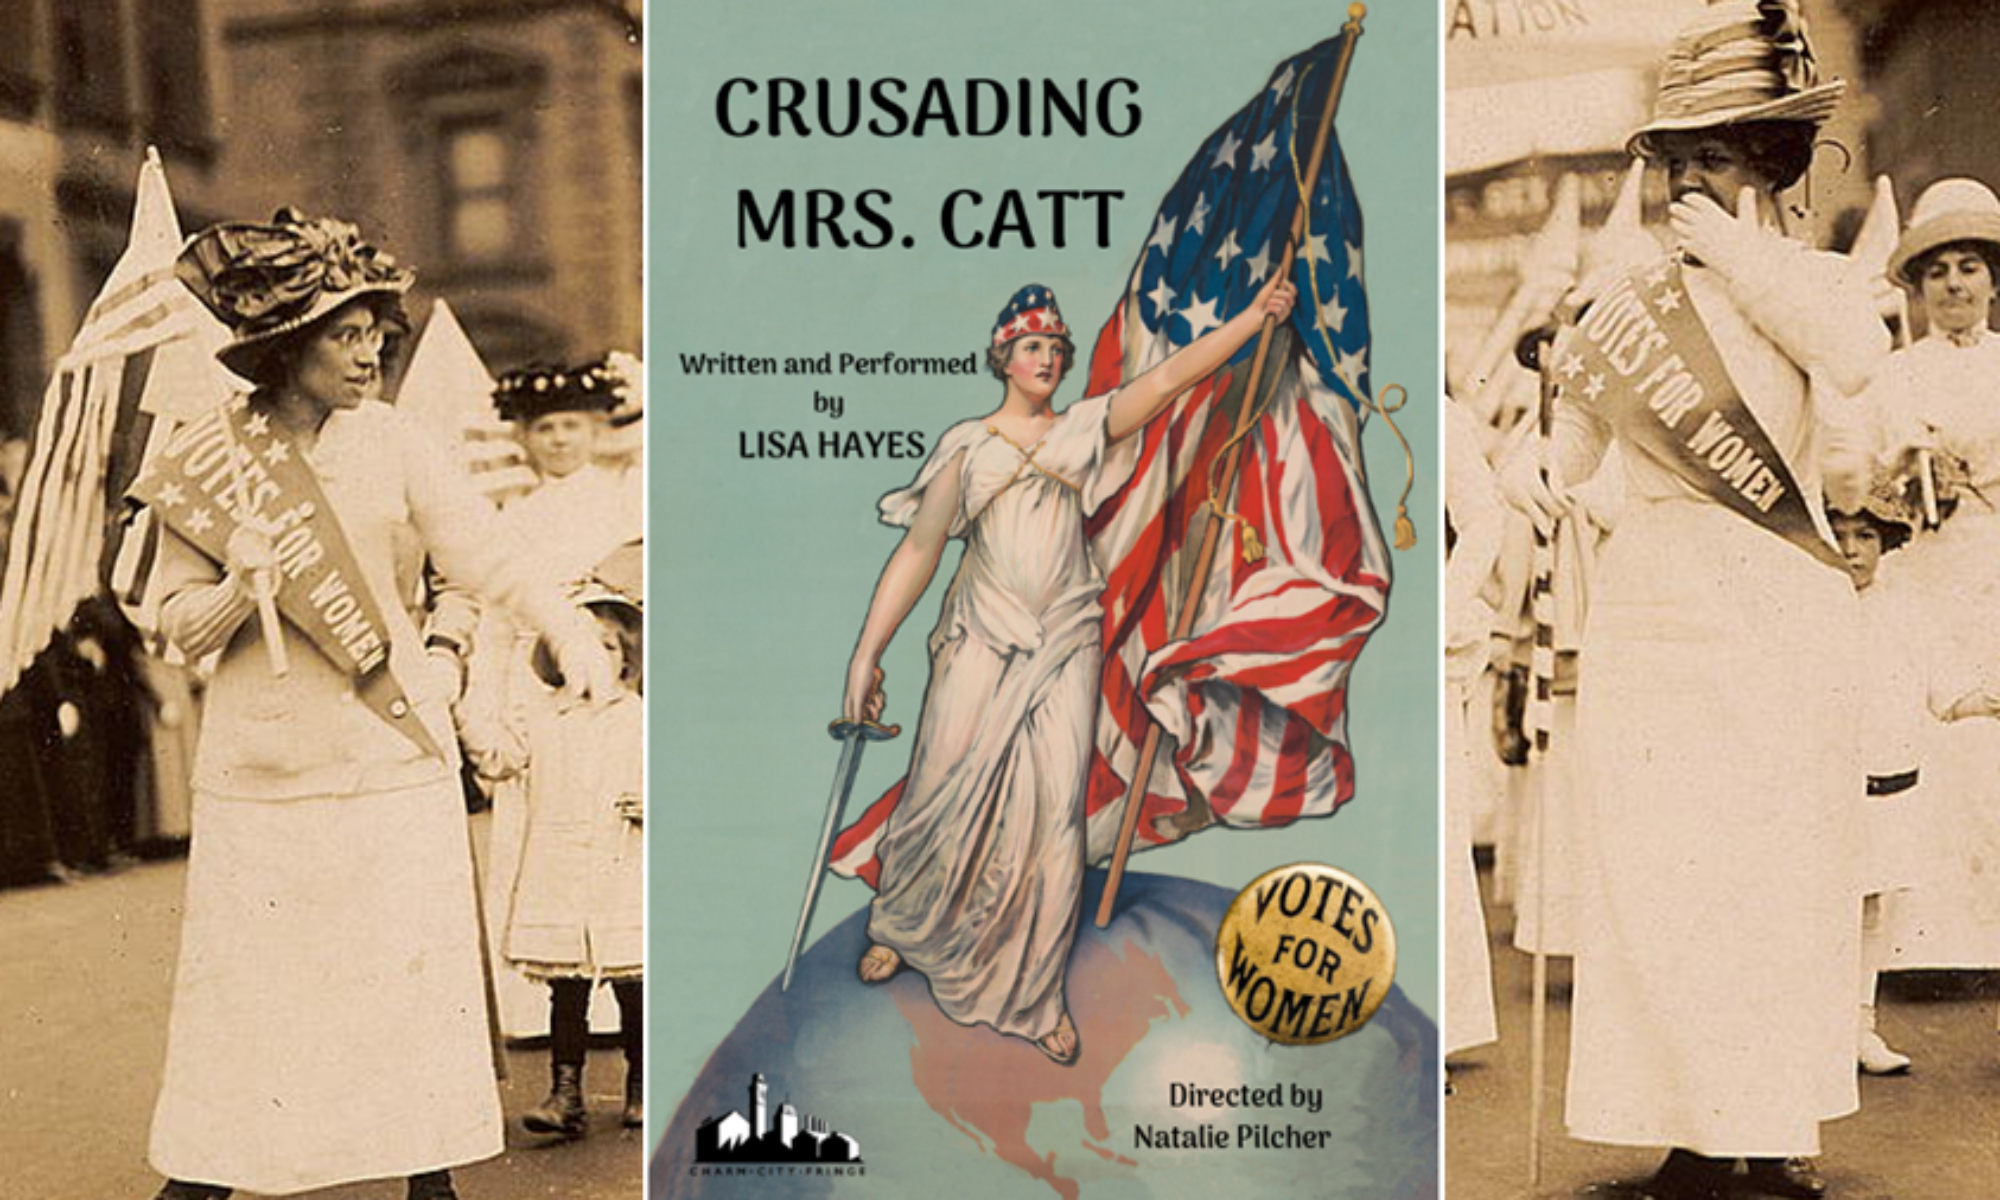 Crusading Mrs. Catt